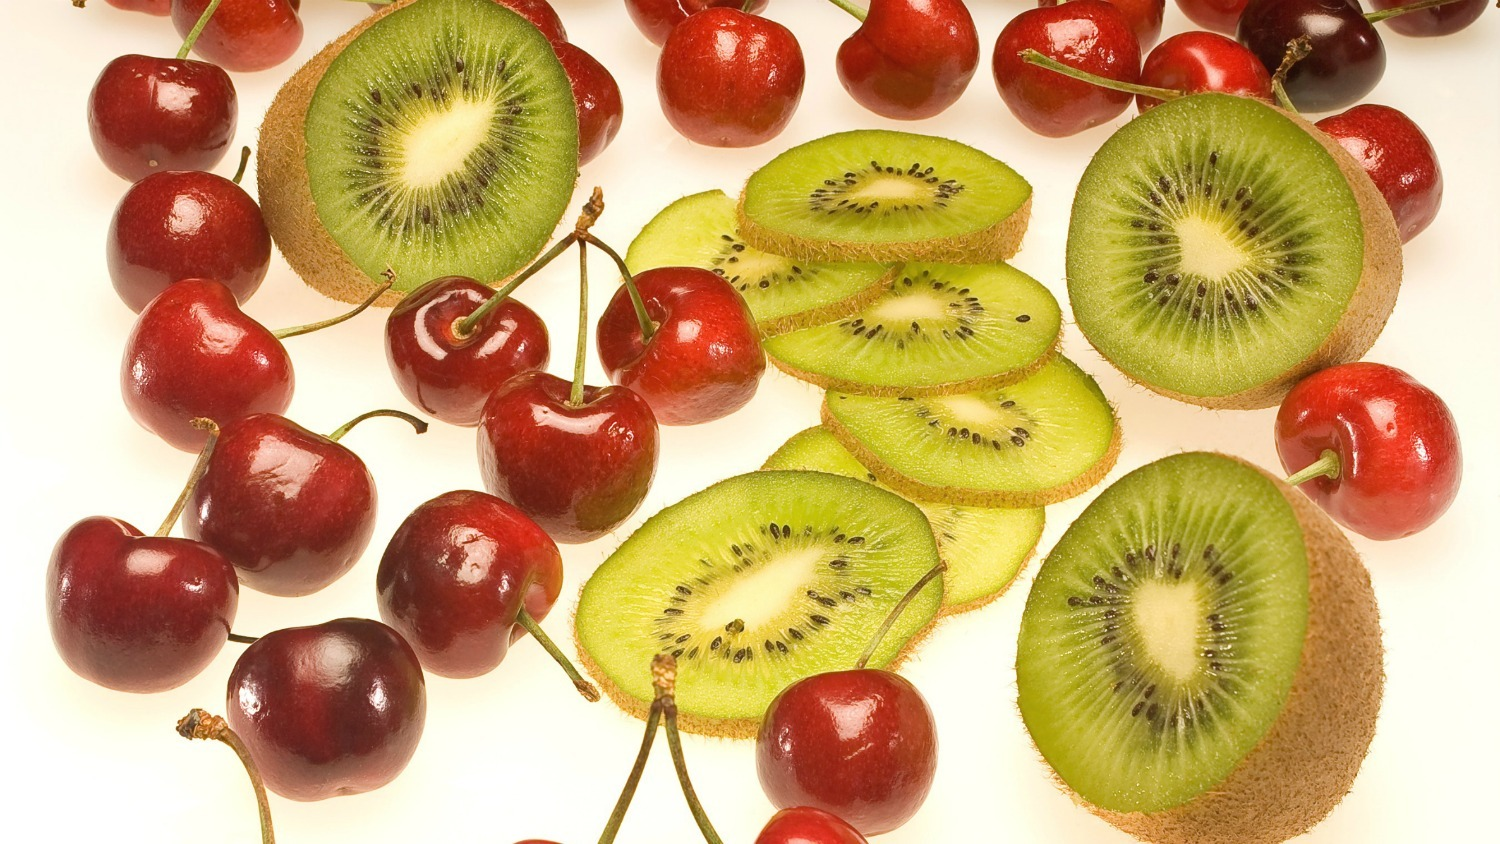 Cherry-Kiwi Antioxidant rich fruit juices help prevent cancer.  %Post Title, %Image Name